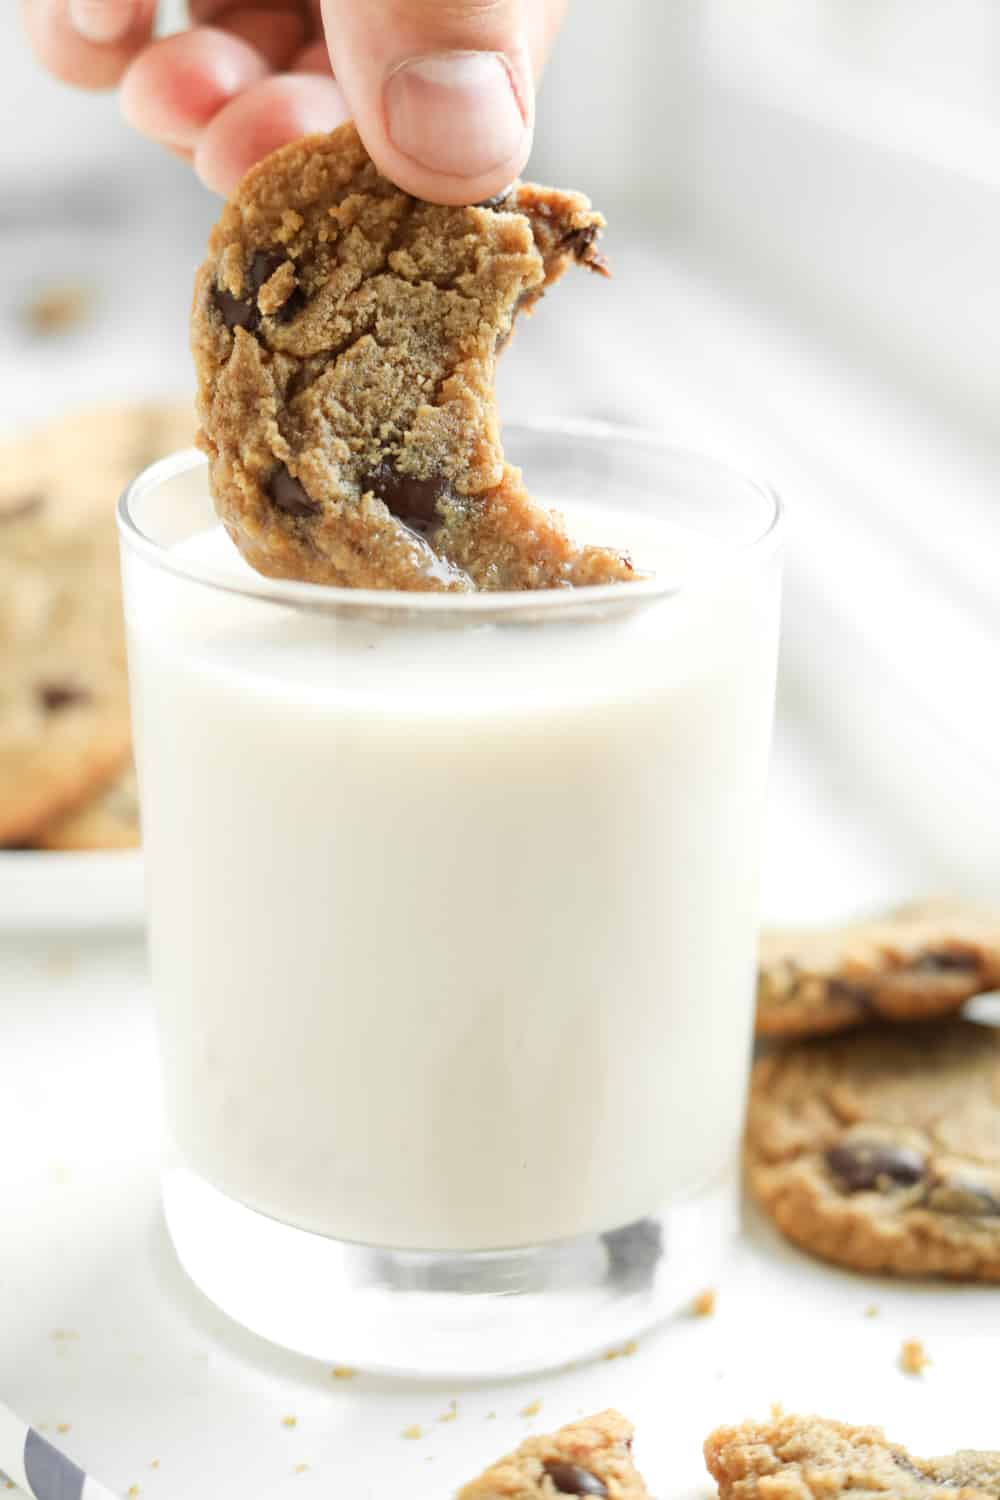 A chocolate chip cookie with a bite taken out of it being dipped into a glass of milk.